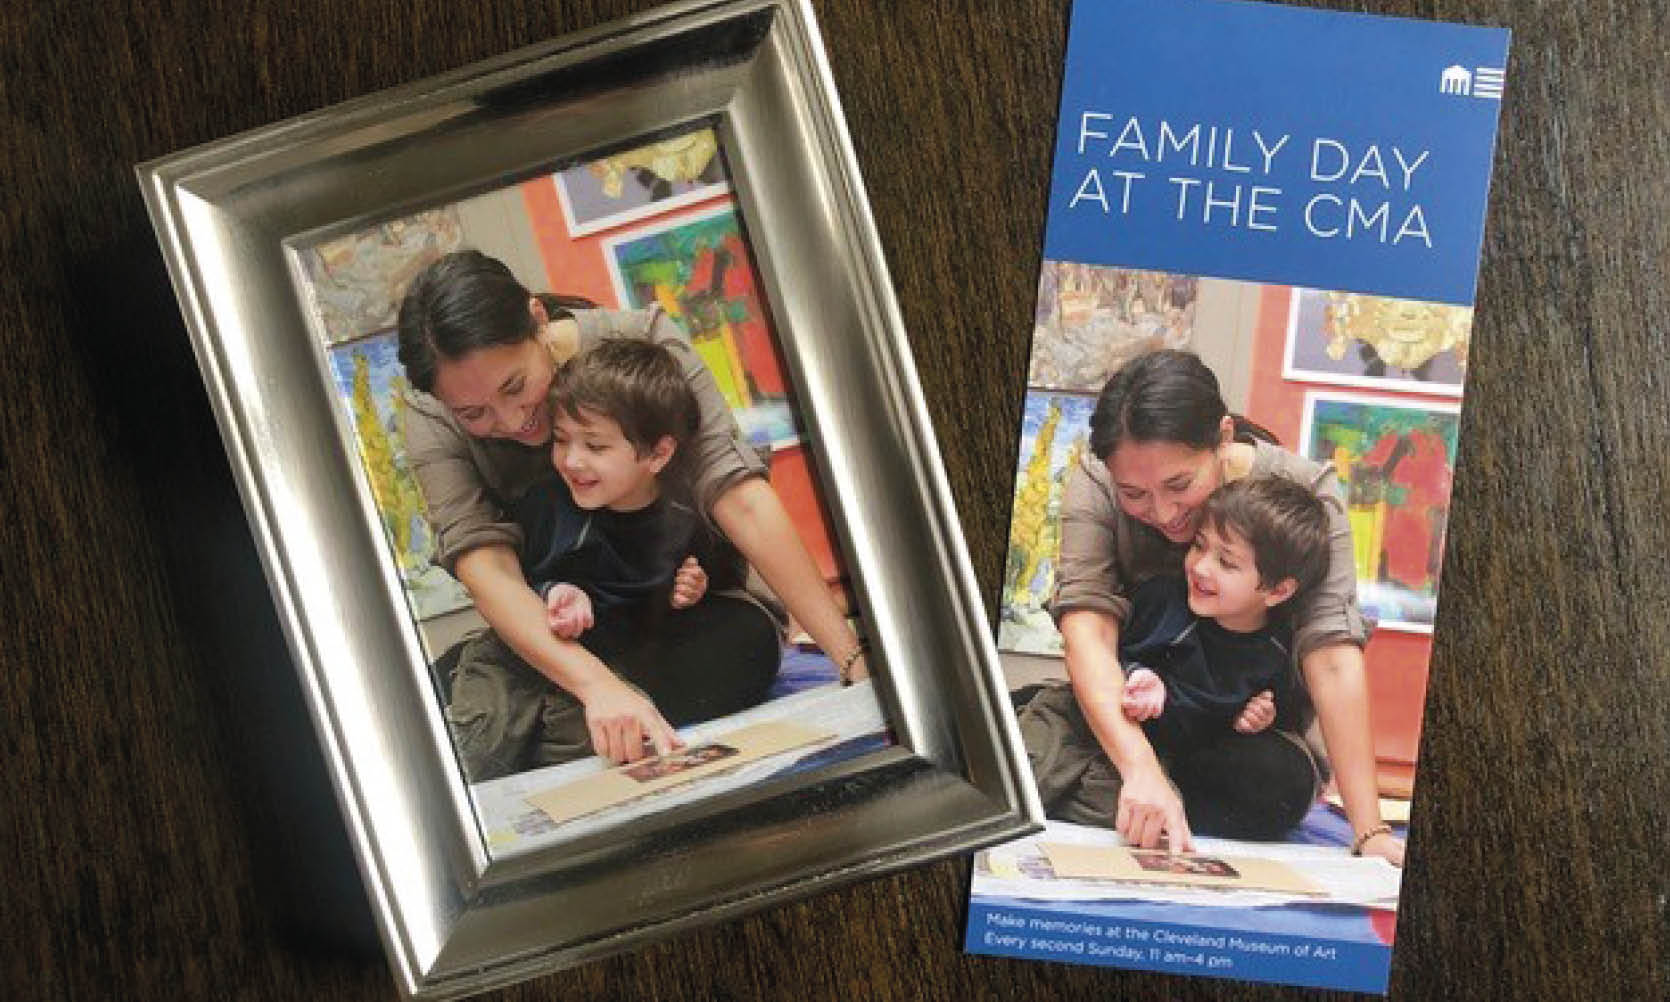 The image of a mother and her young son are featured in both a framed photograph and brochure laid side-by-side